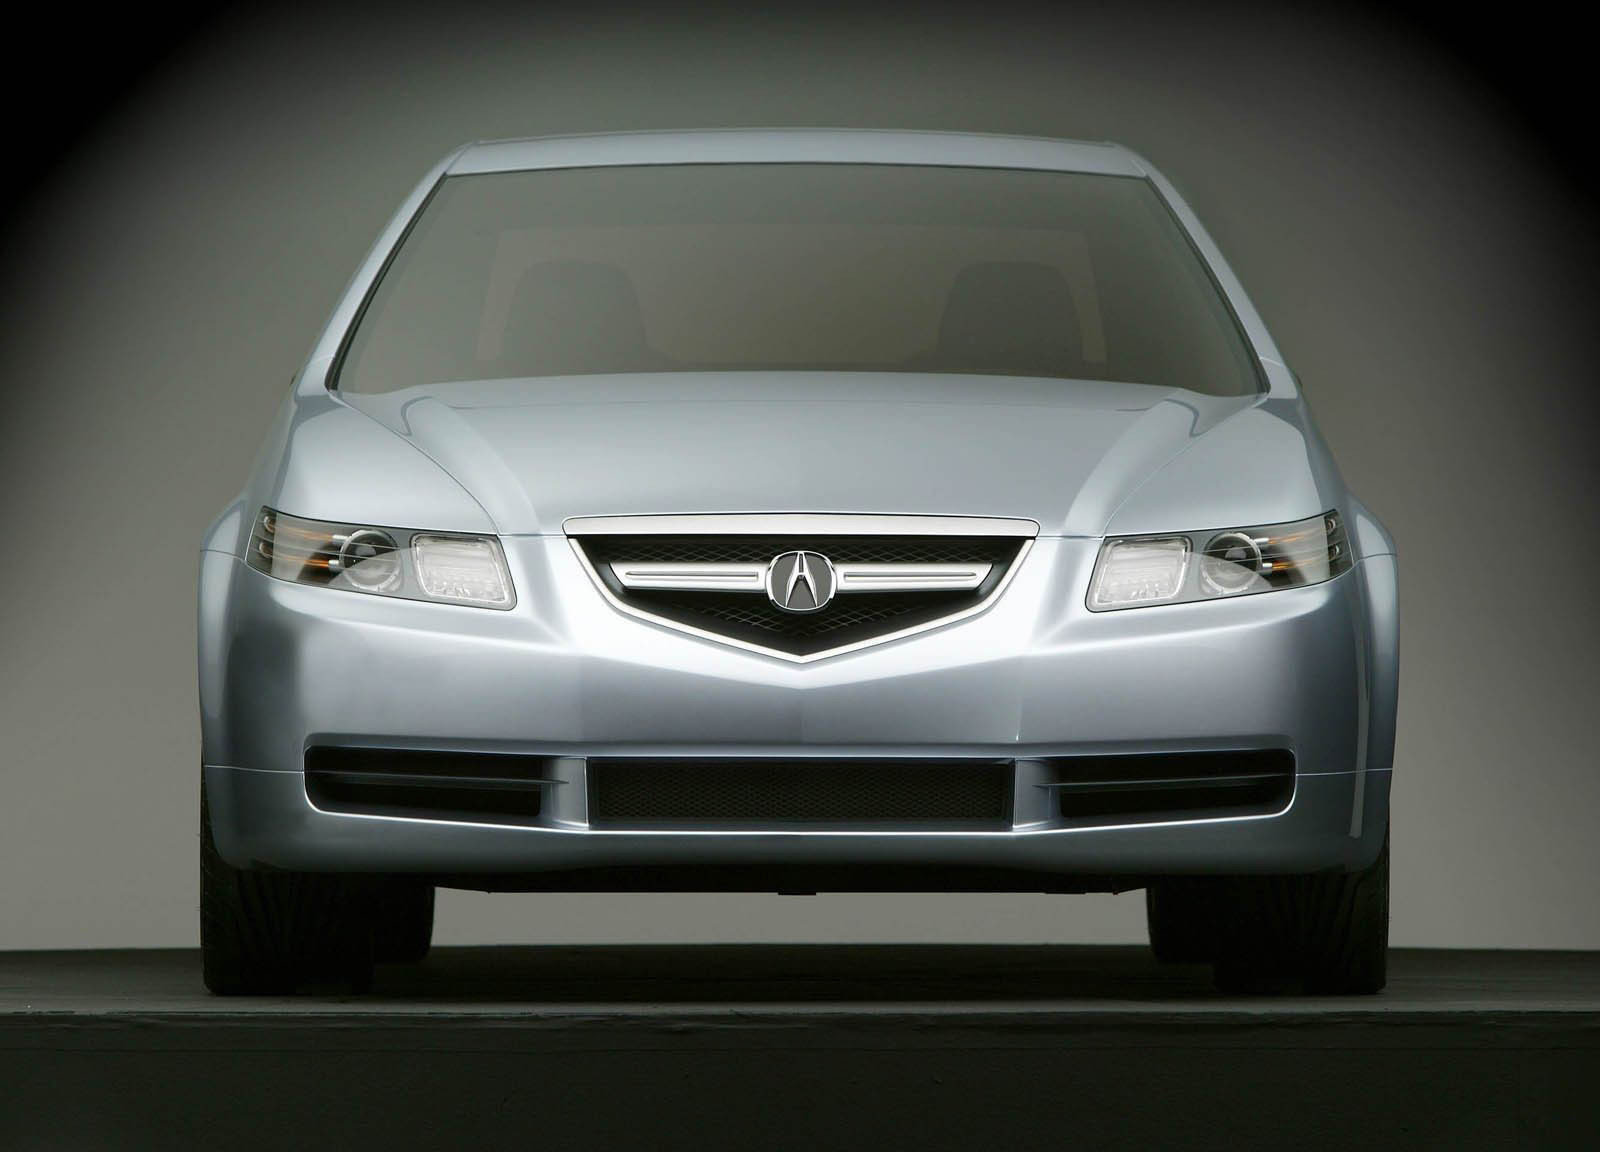 1996 Acura TL Review